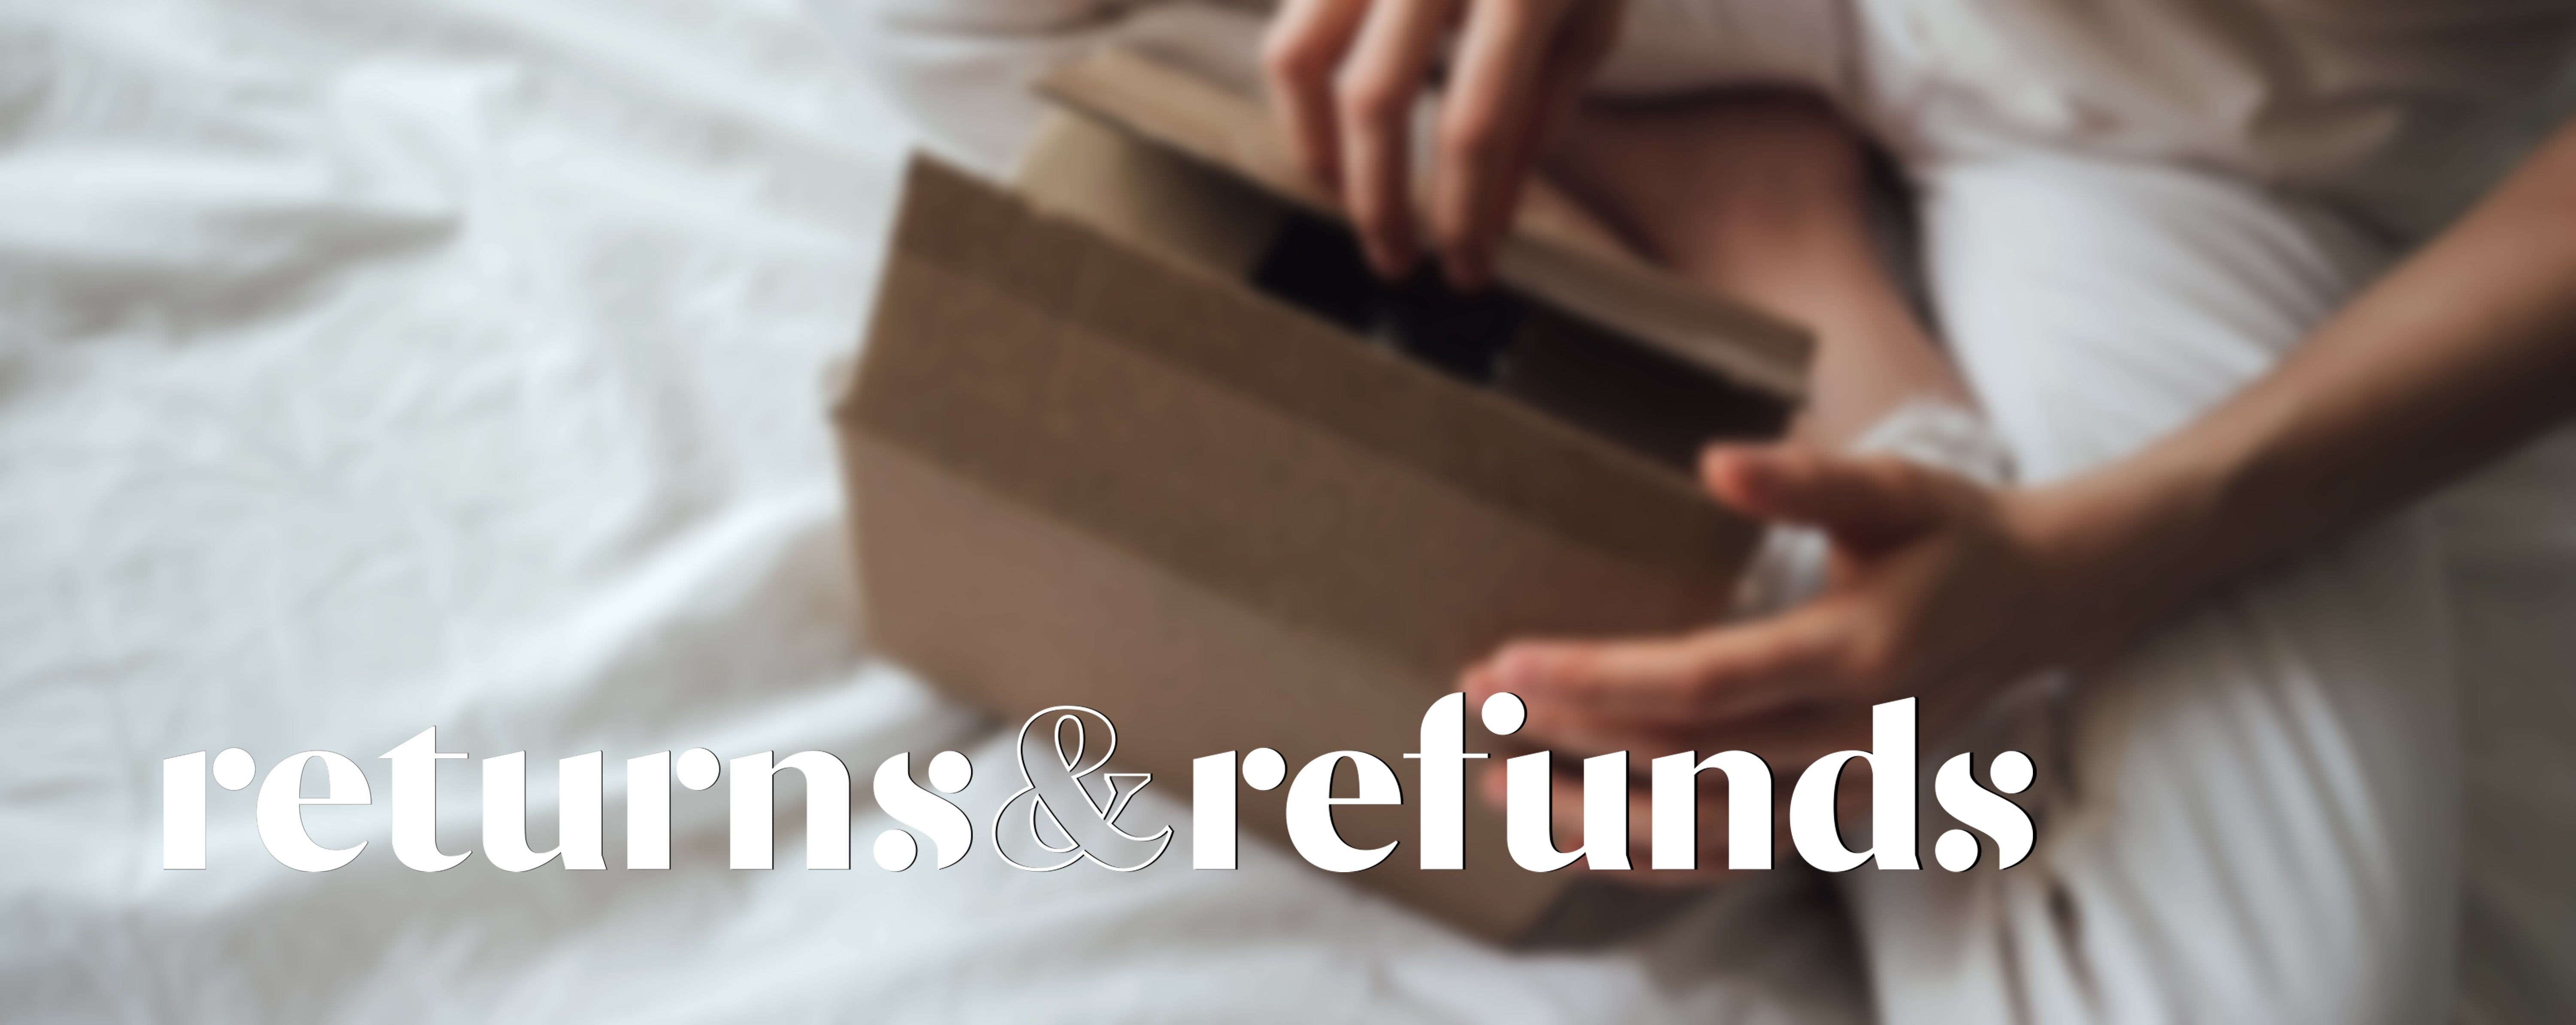 Returns & Refunds - Lightsandlamps.com